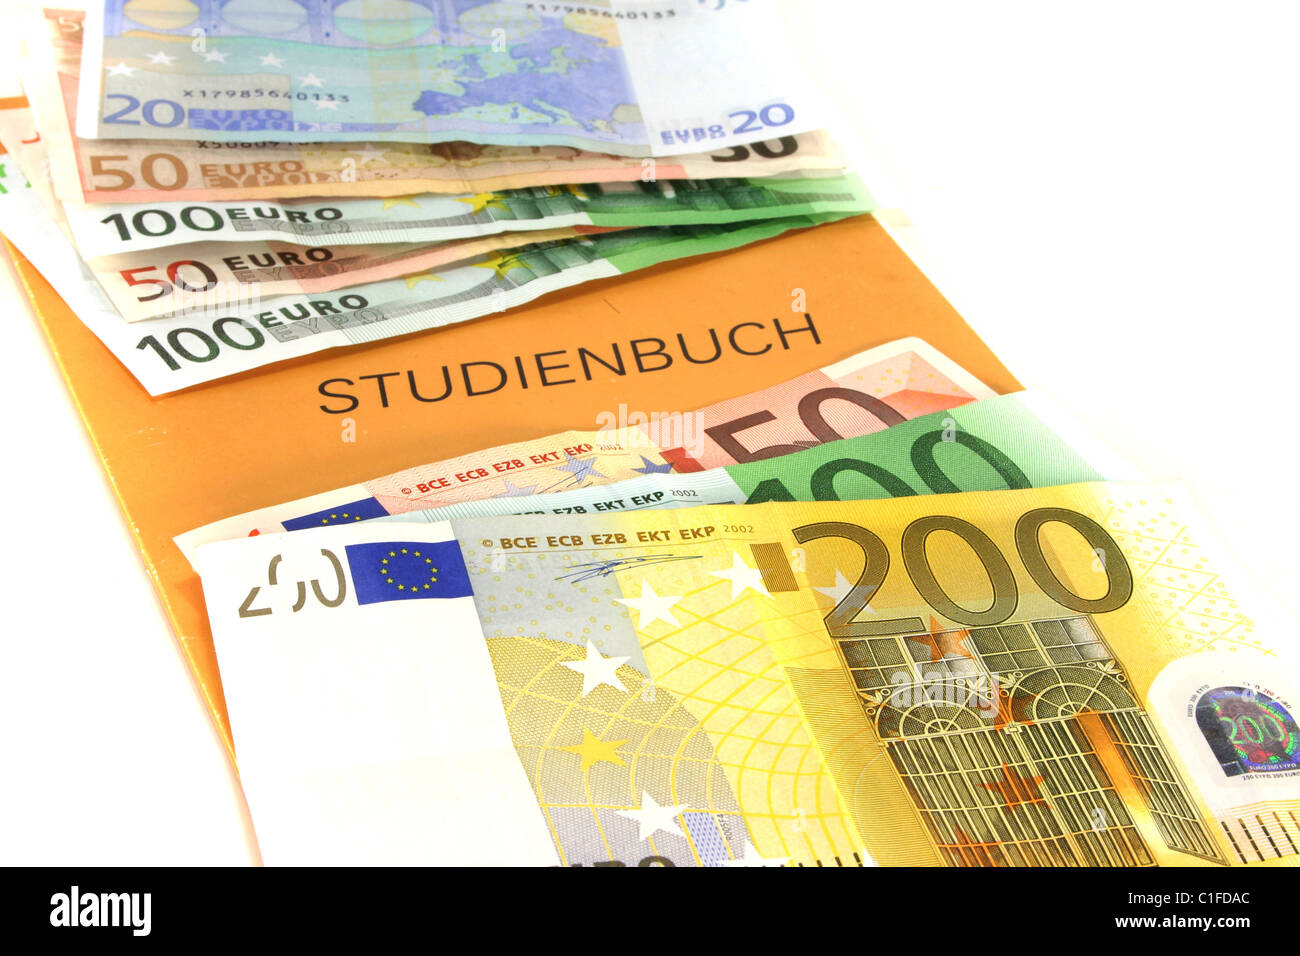 purchased diploma - Study book with lots of euro notes - Stock Image